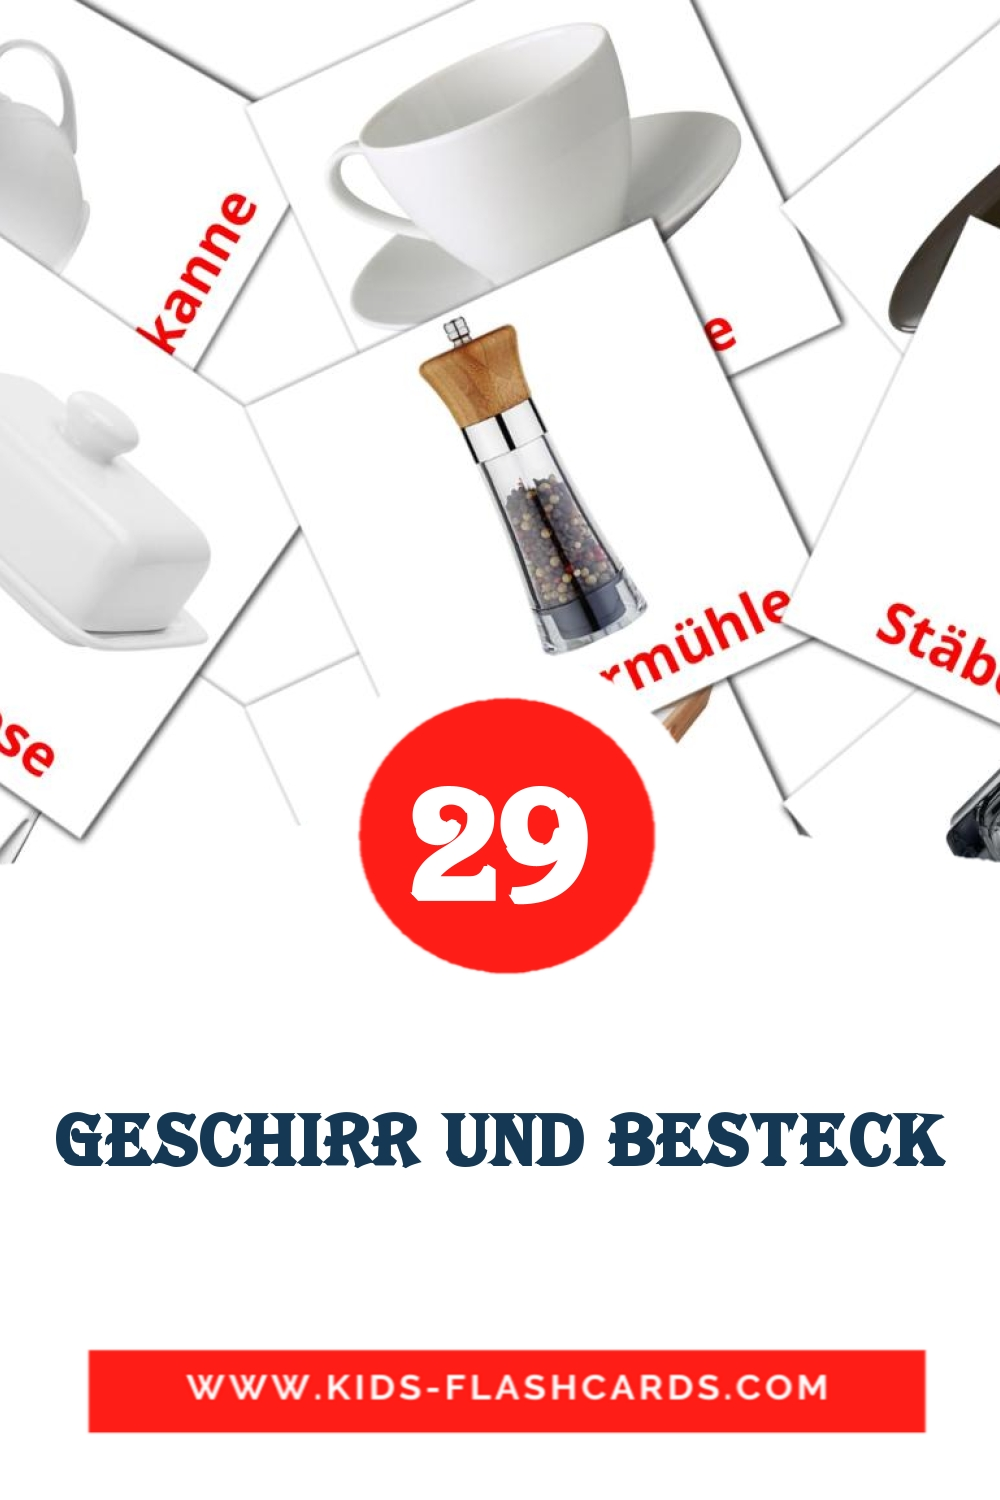 Geschirr und Besteck - free cards in german